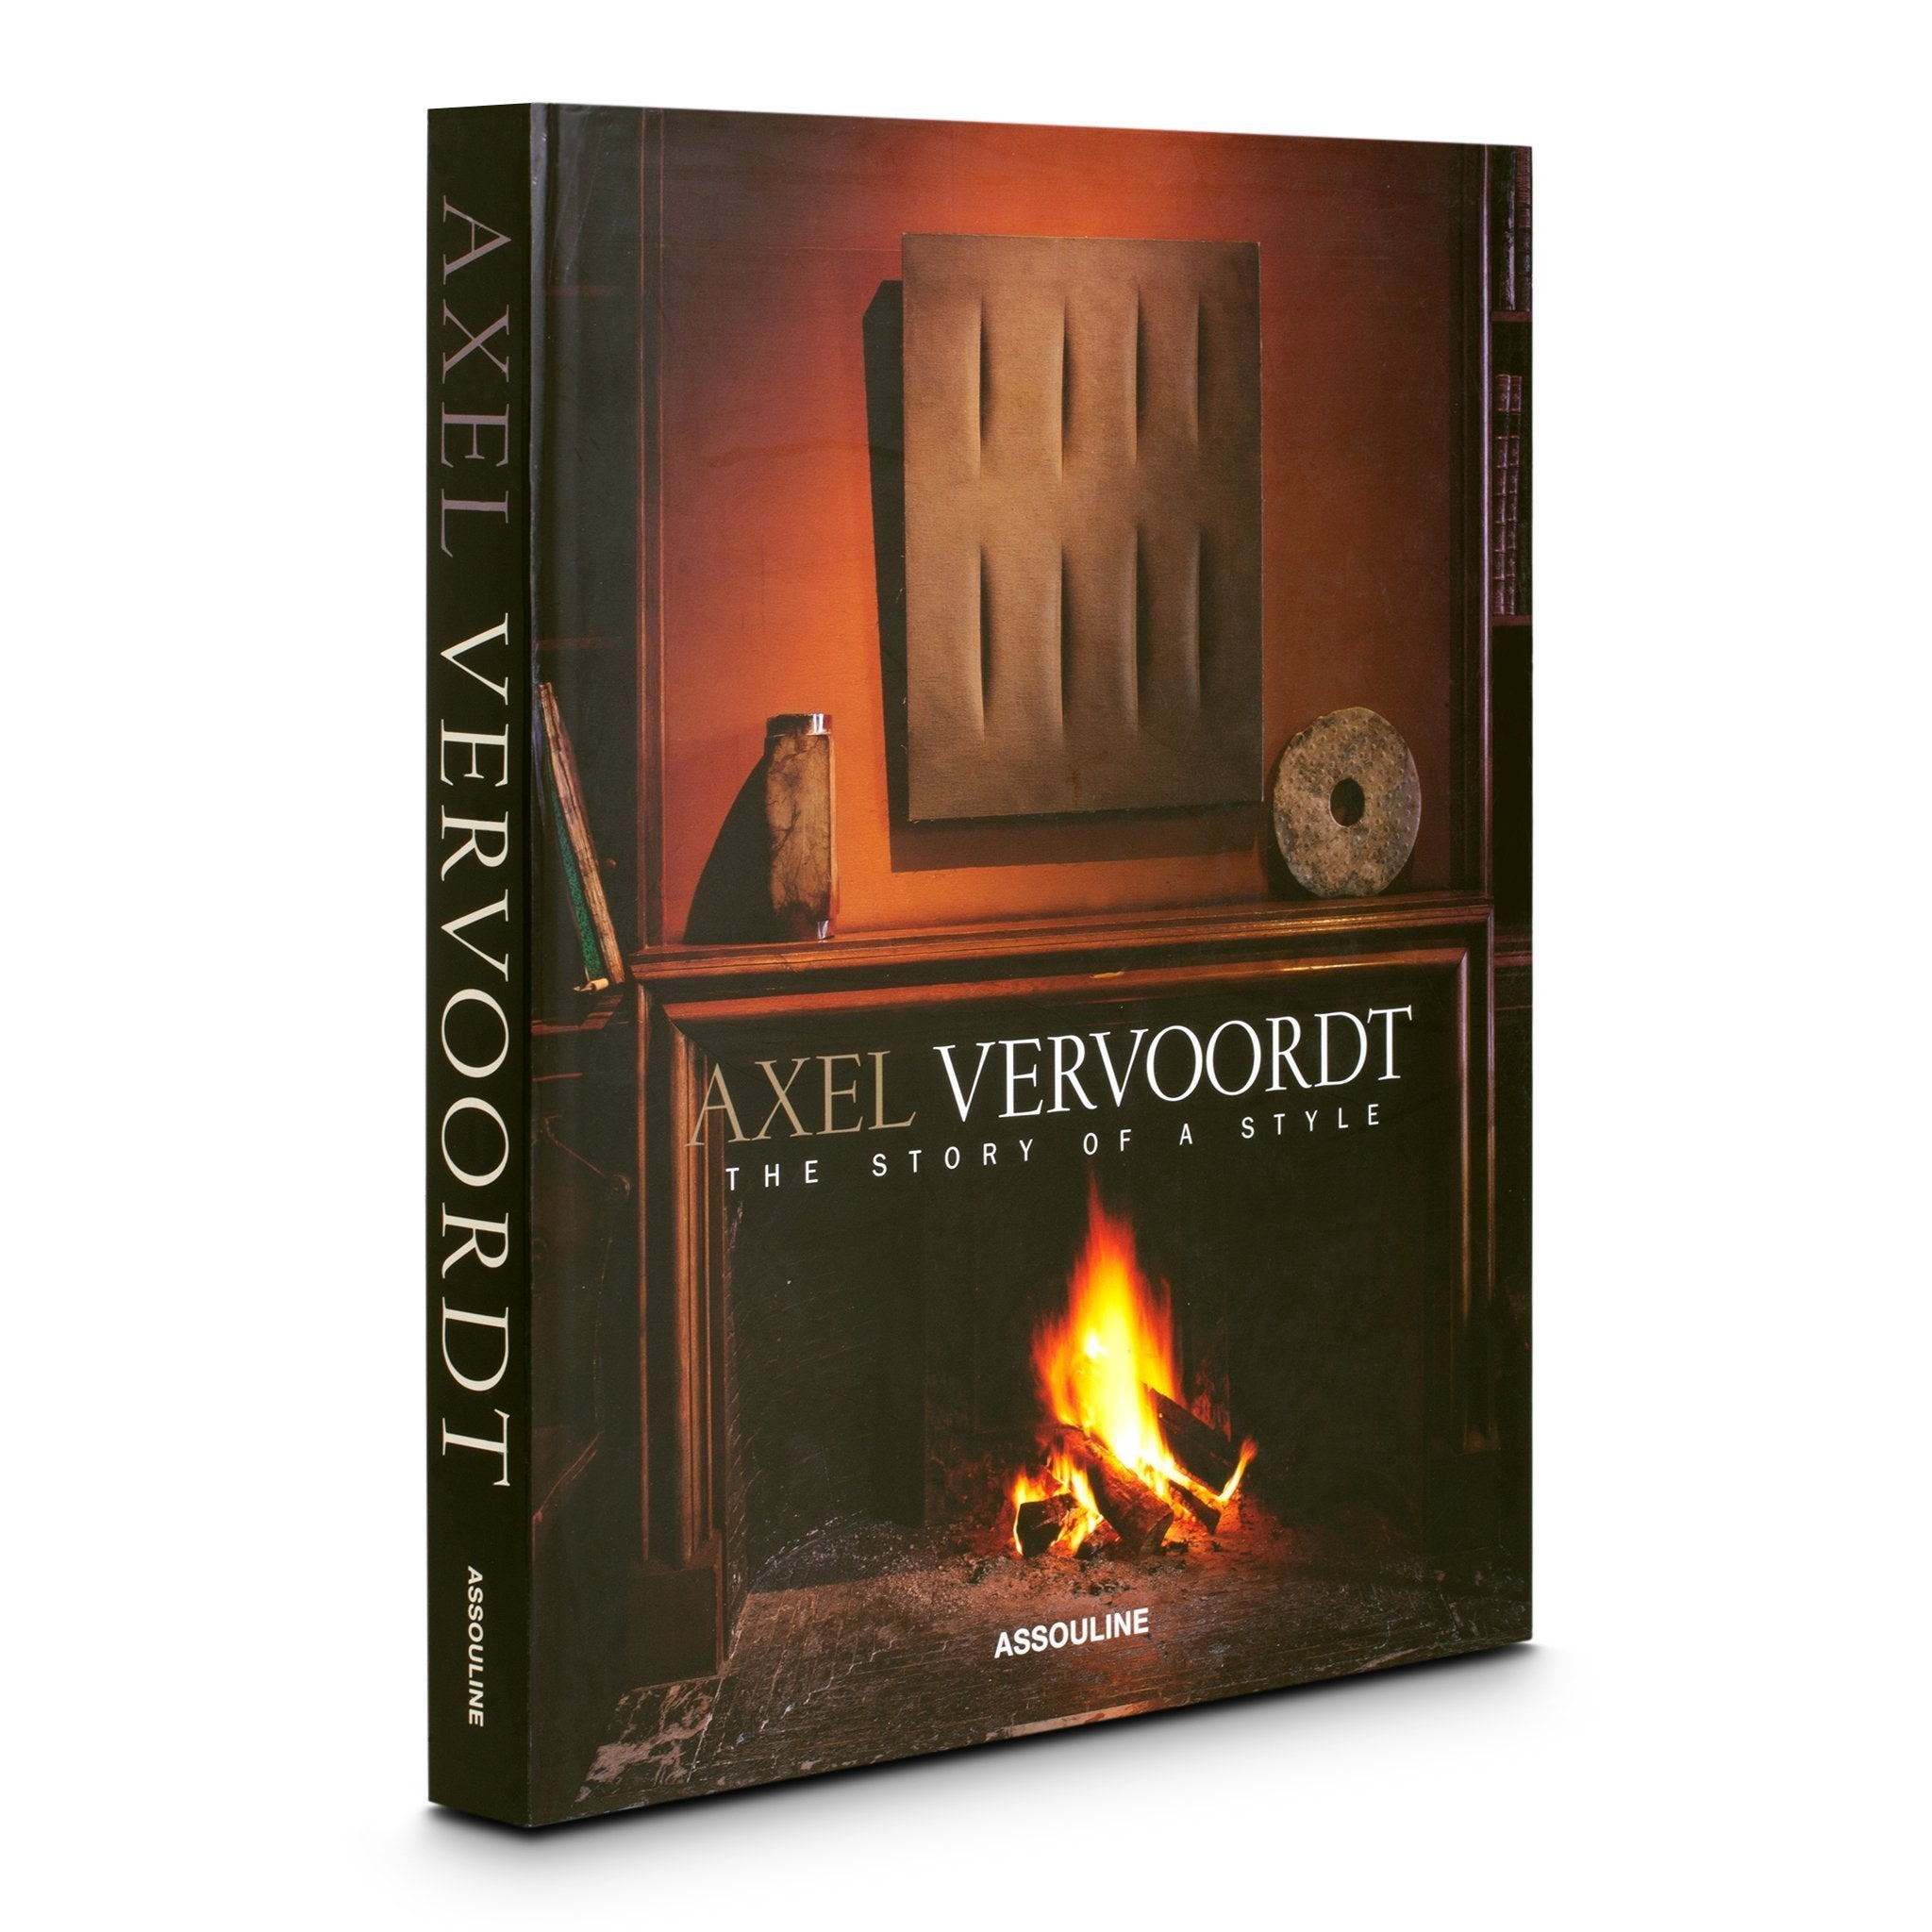 Axel Vervoordt: The Story of a Style - Assouline